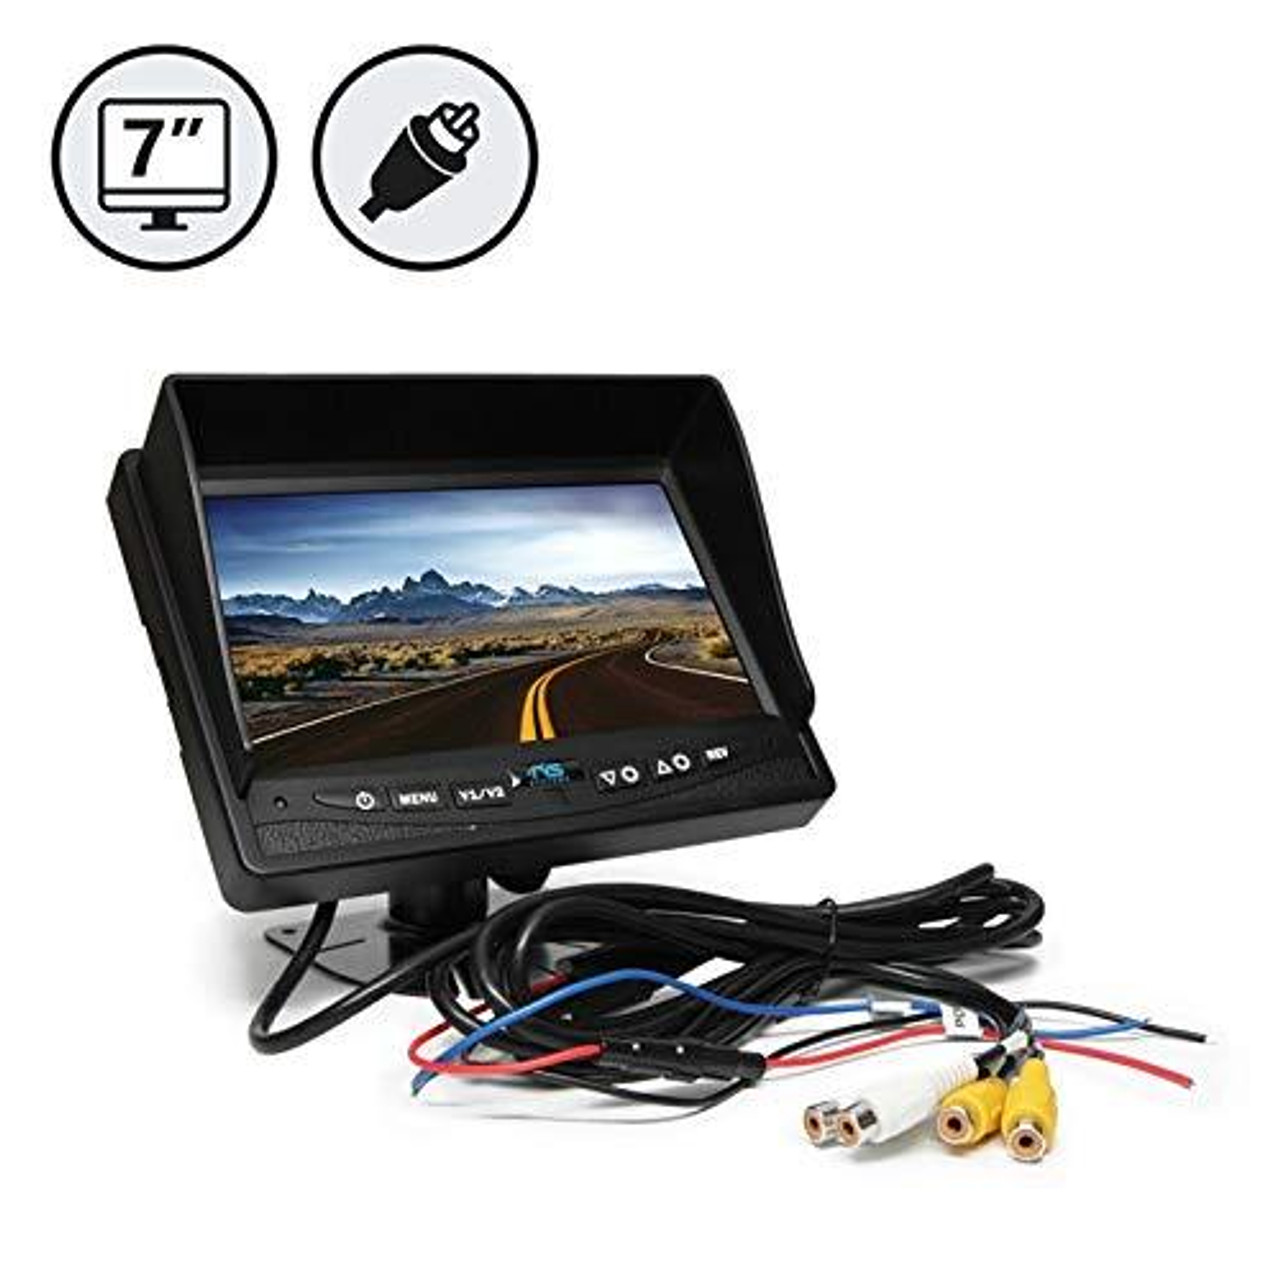 "7"" LED Digital Color Rear View Monitor with RCA Connections"